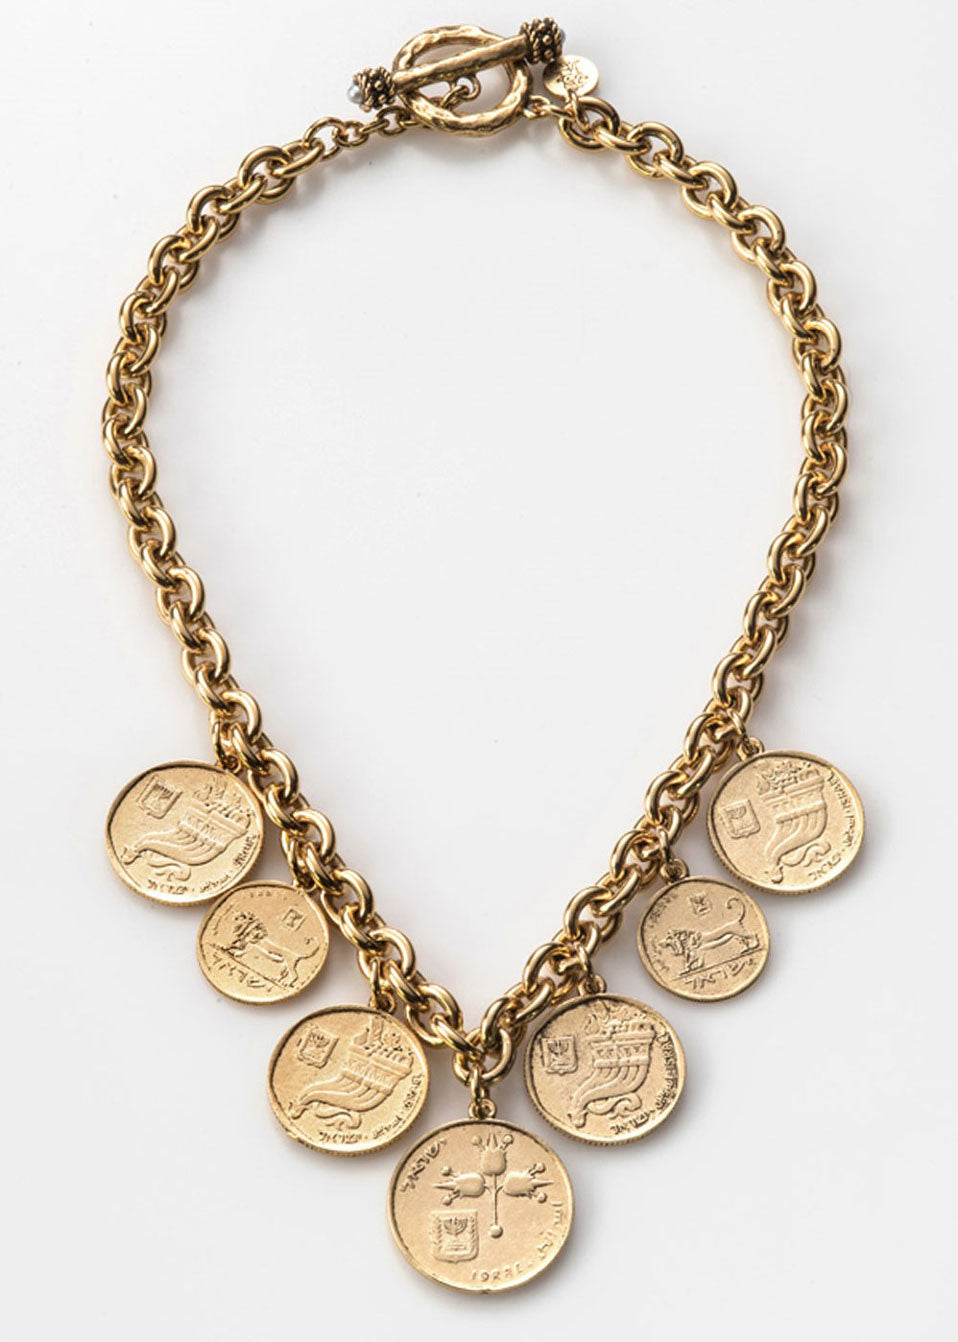 Israeli Coin Charm Necklace